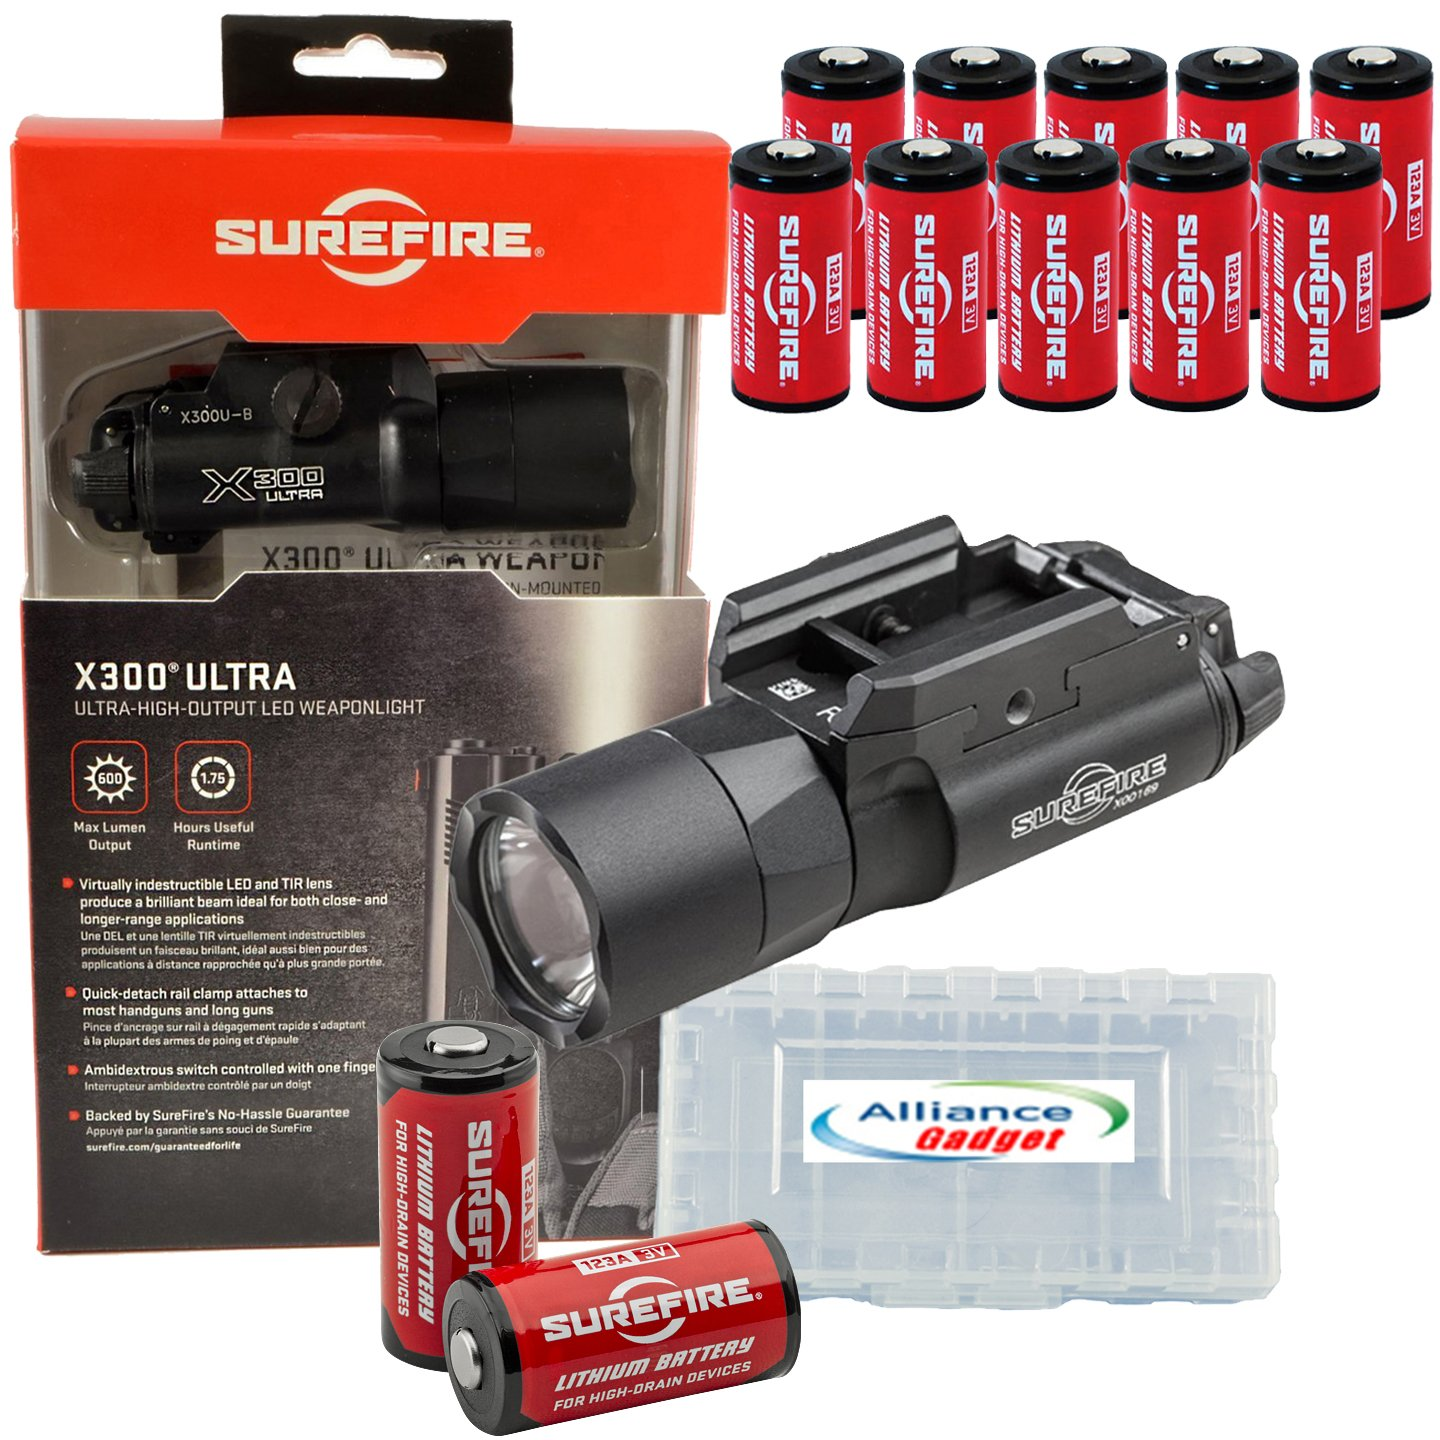 SureFire X300 Ultra X300U-B High Output 600 Lumen LED WeaponLight Black with 12 extra CR123A Batteries and 3 Alliance Gadget Battery Cases by SureFire